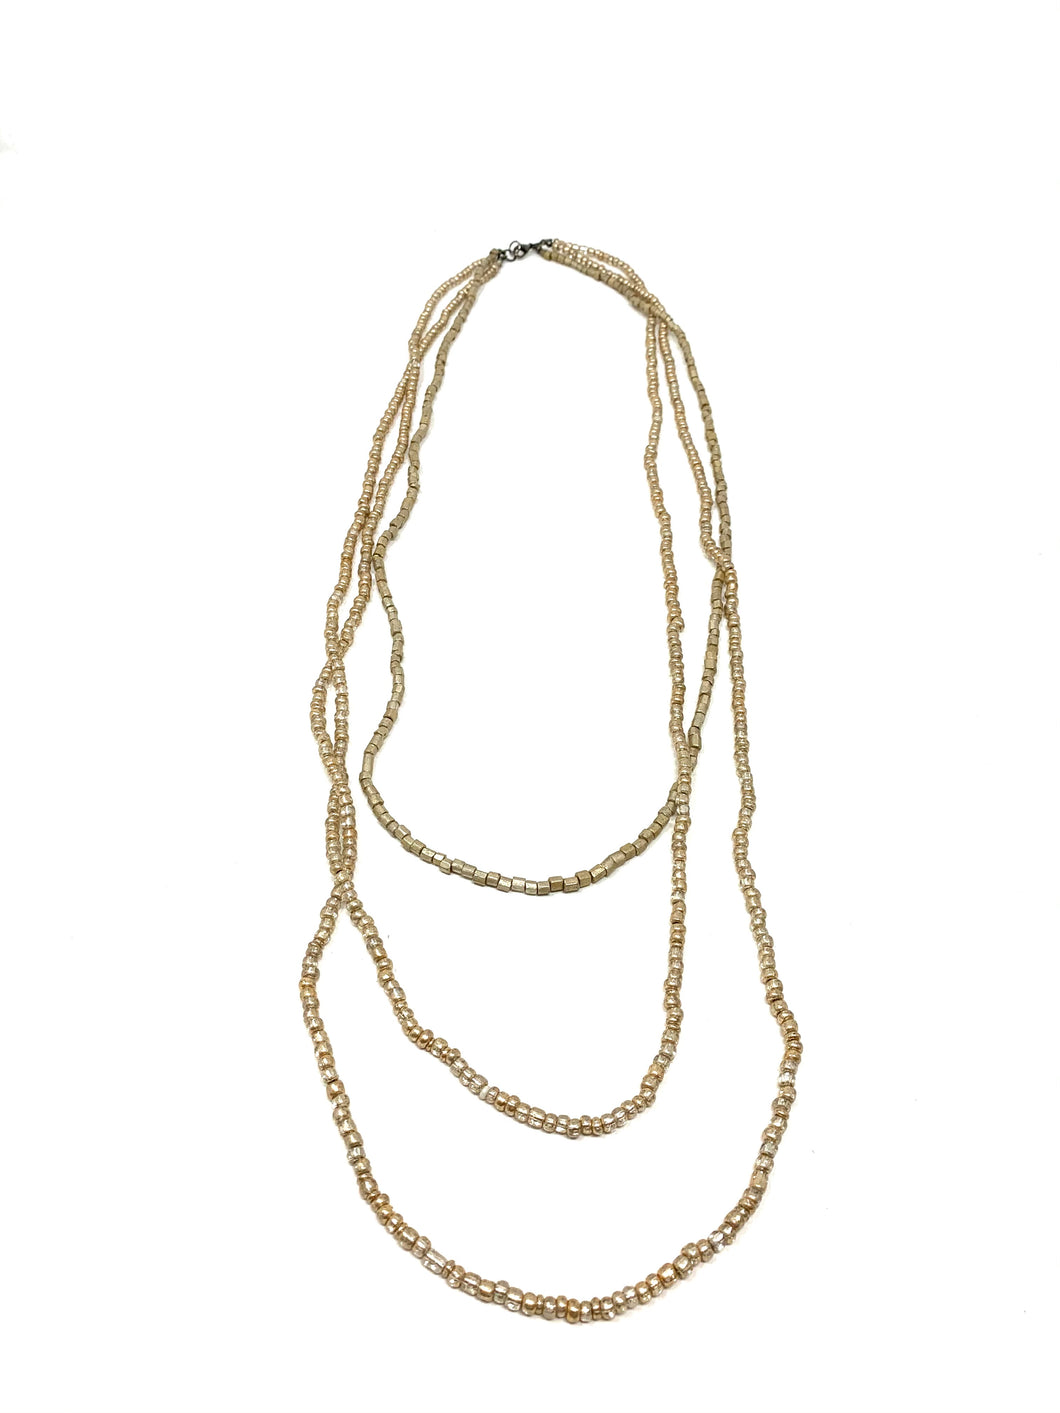 Gold Patina Layered Necklace